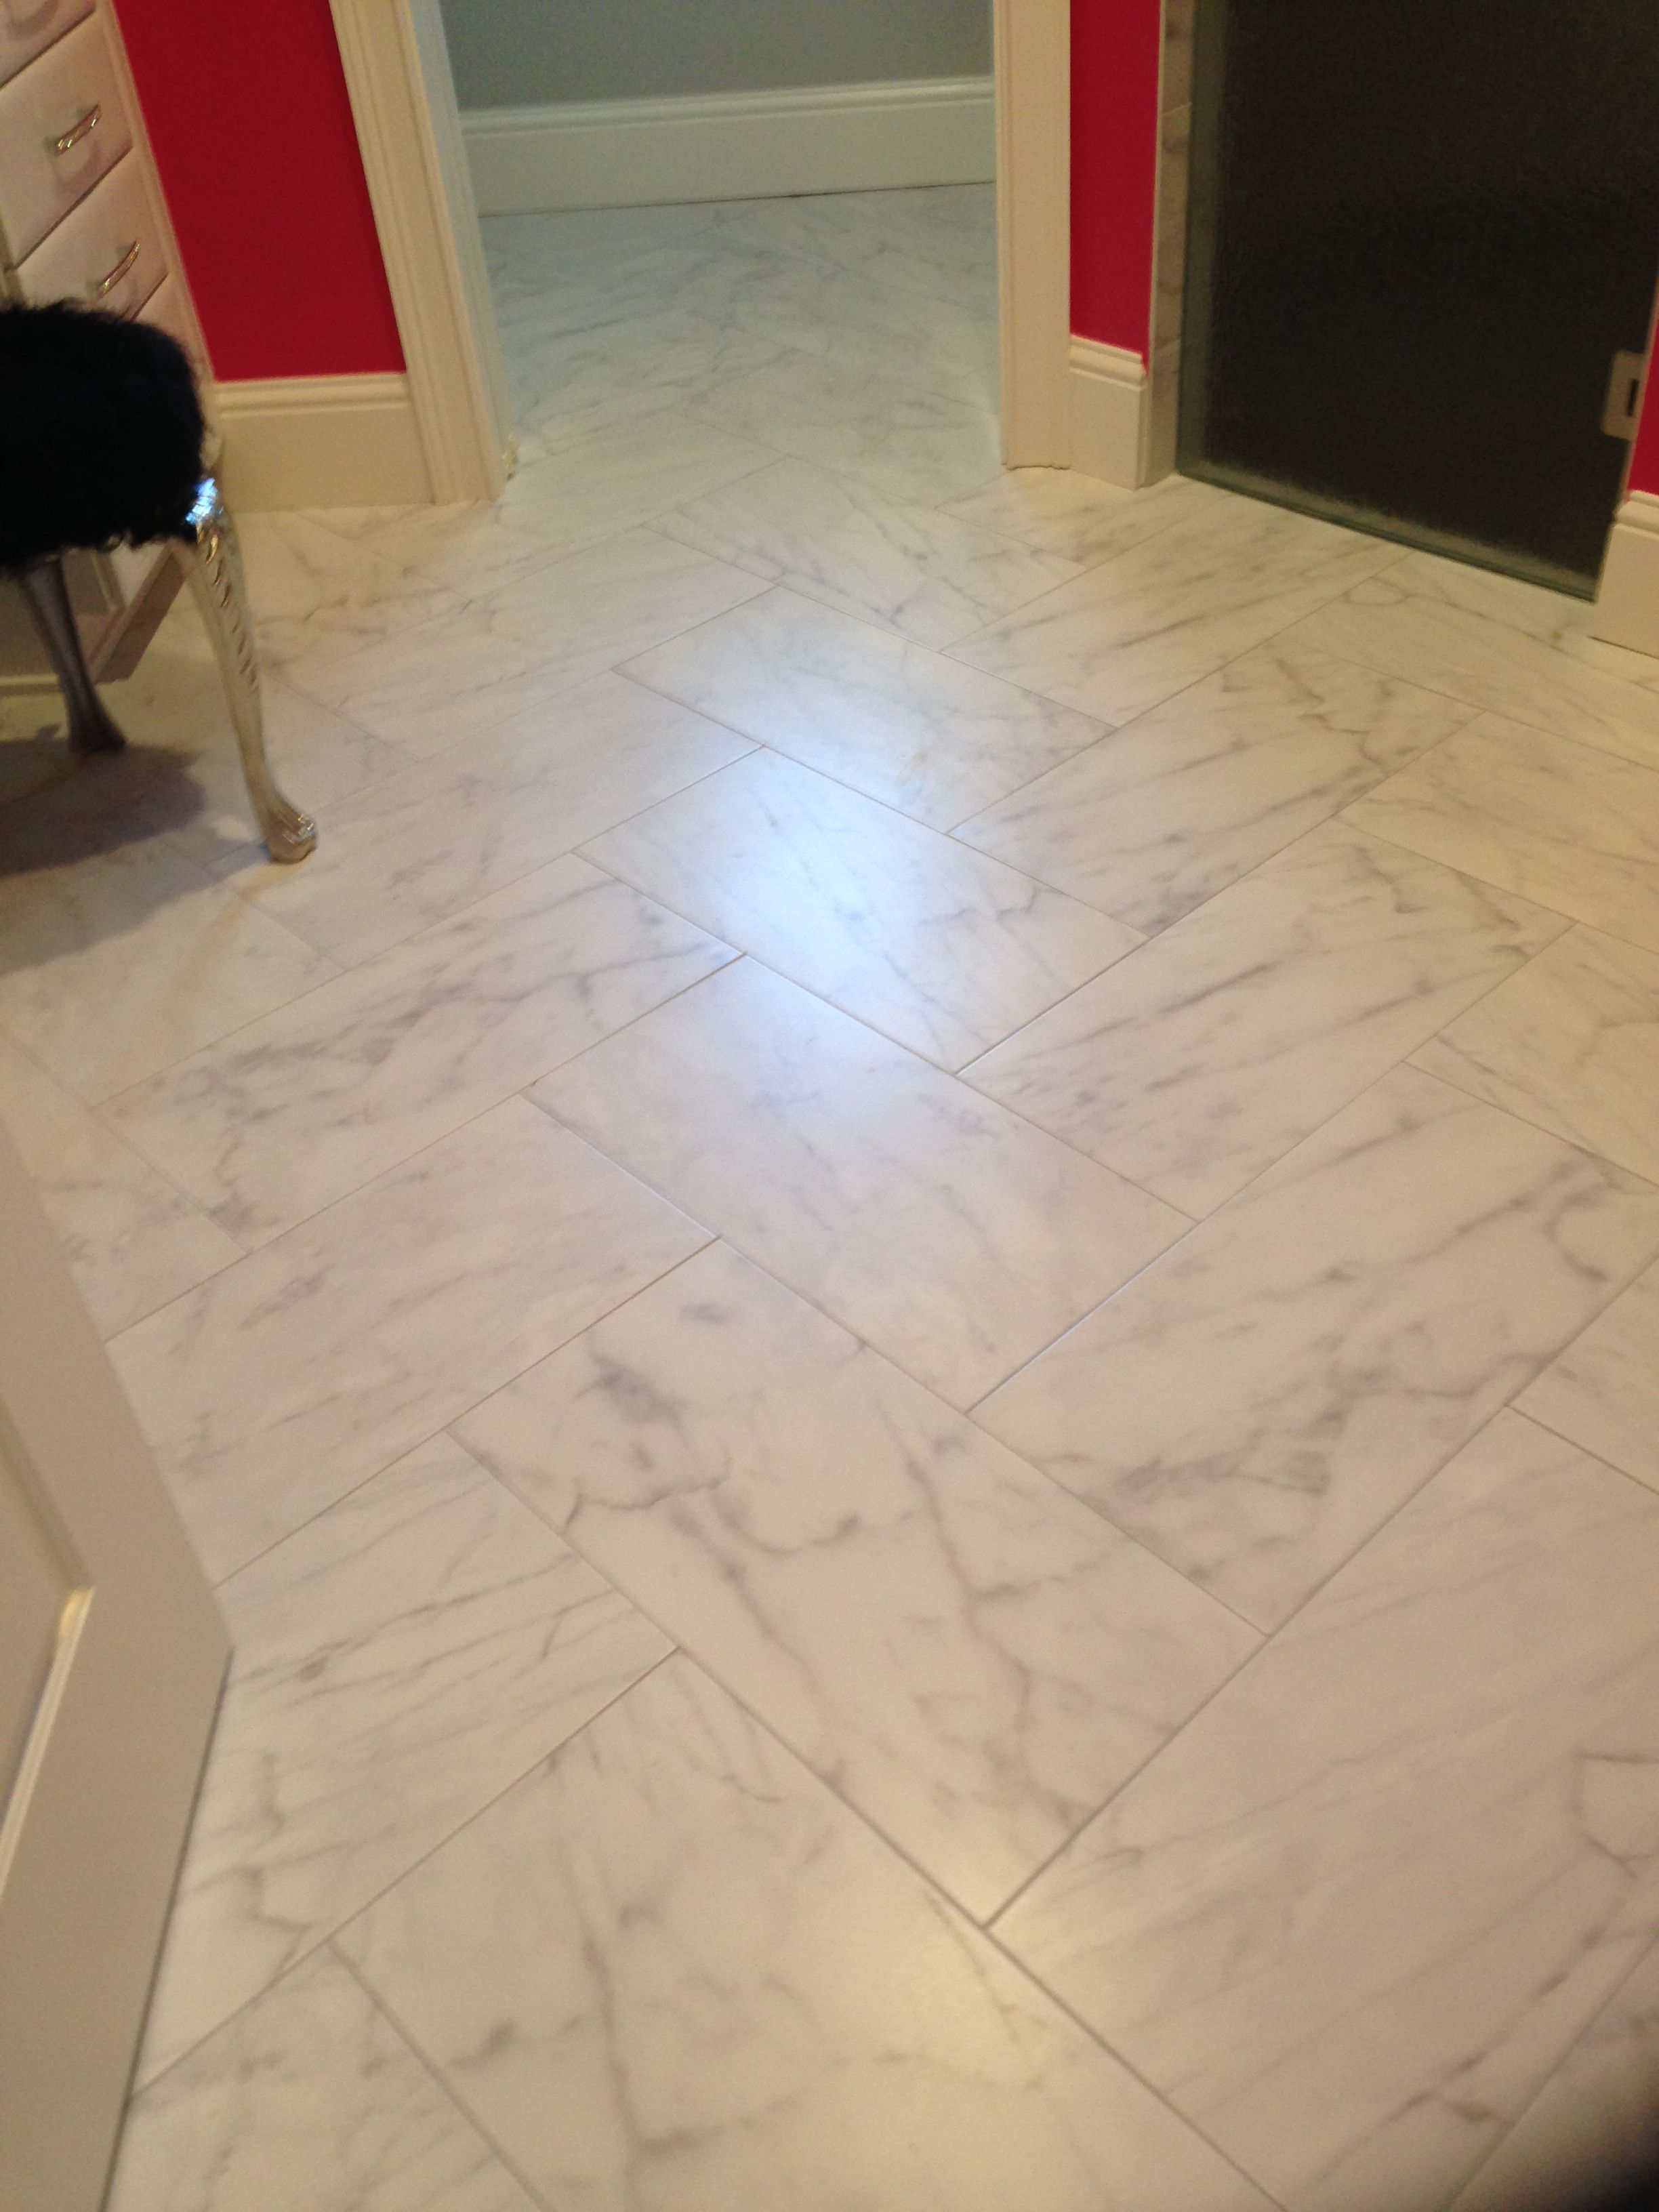 12 X 24 Carrara Look Porcelain Tile In Herringbone Pattern Herringbone Tile Floors Tile Floor Patterned Floor Tiles